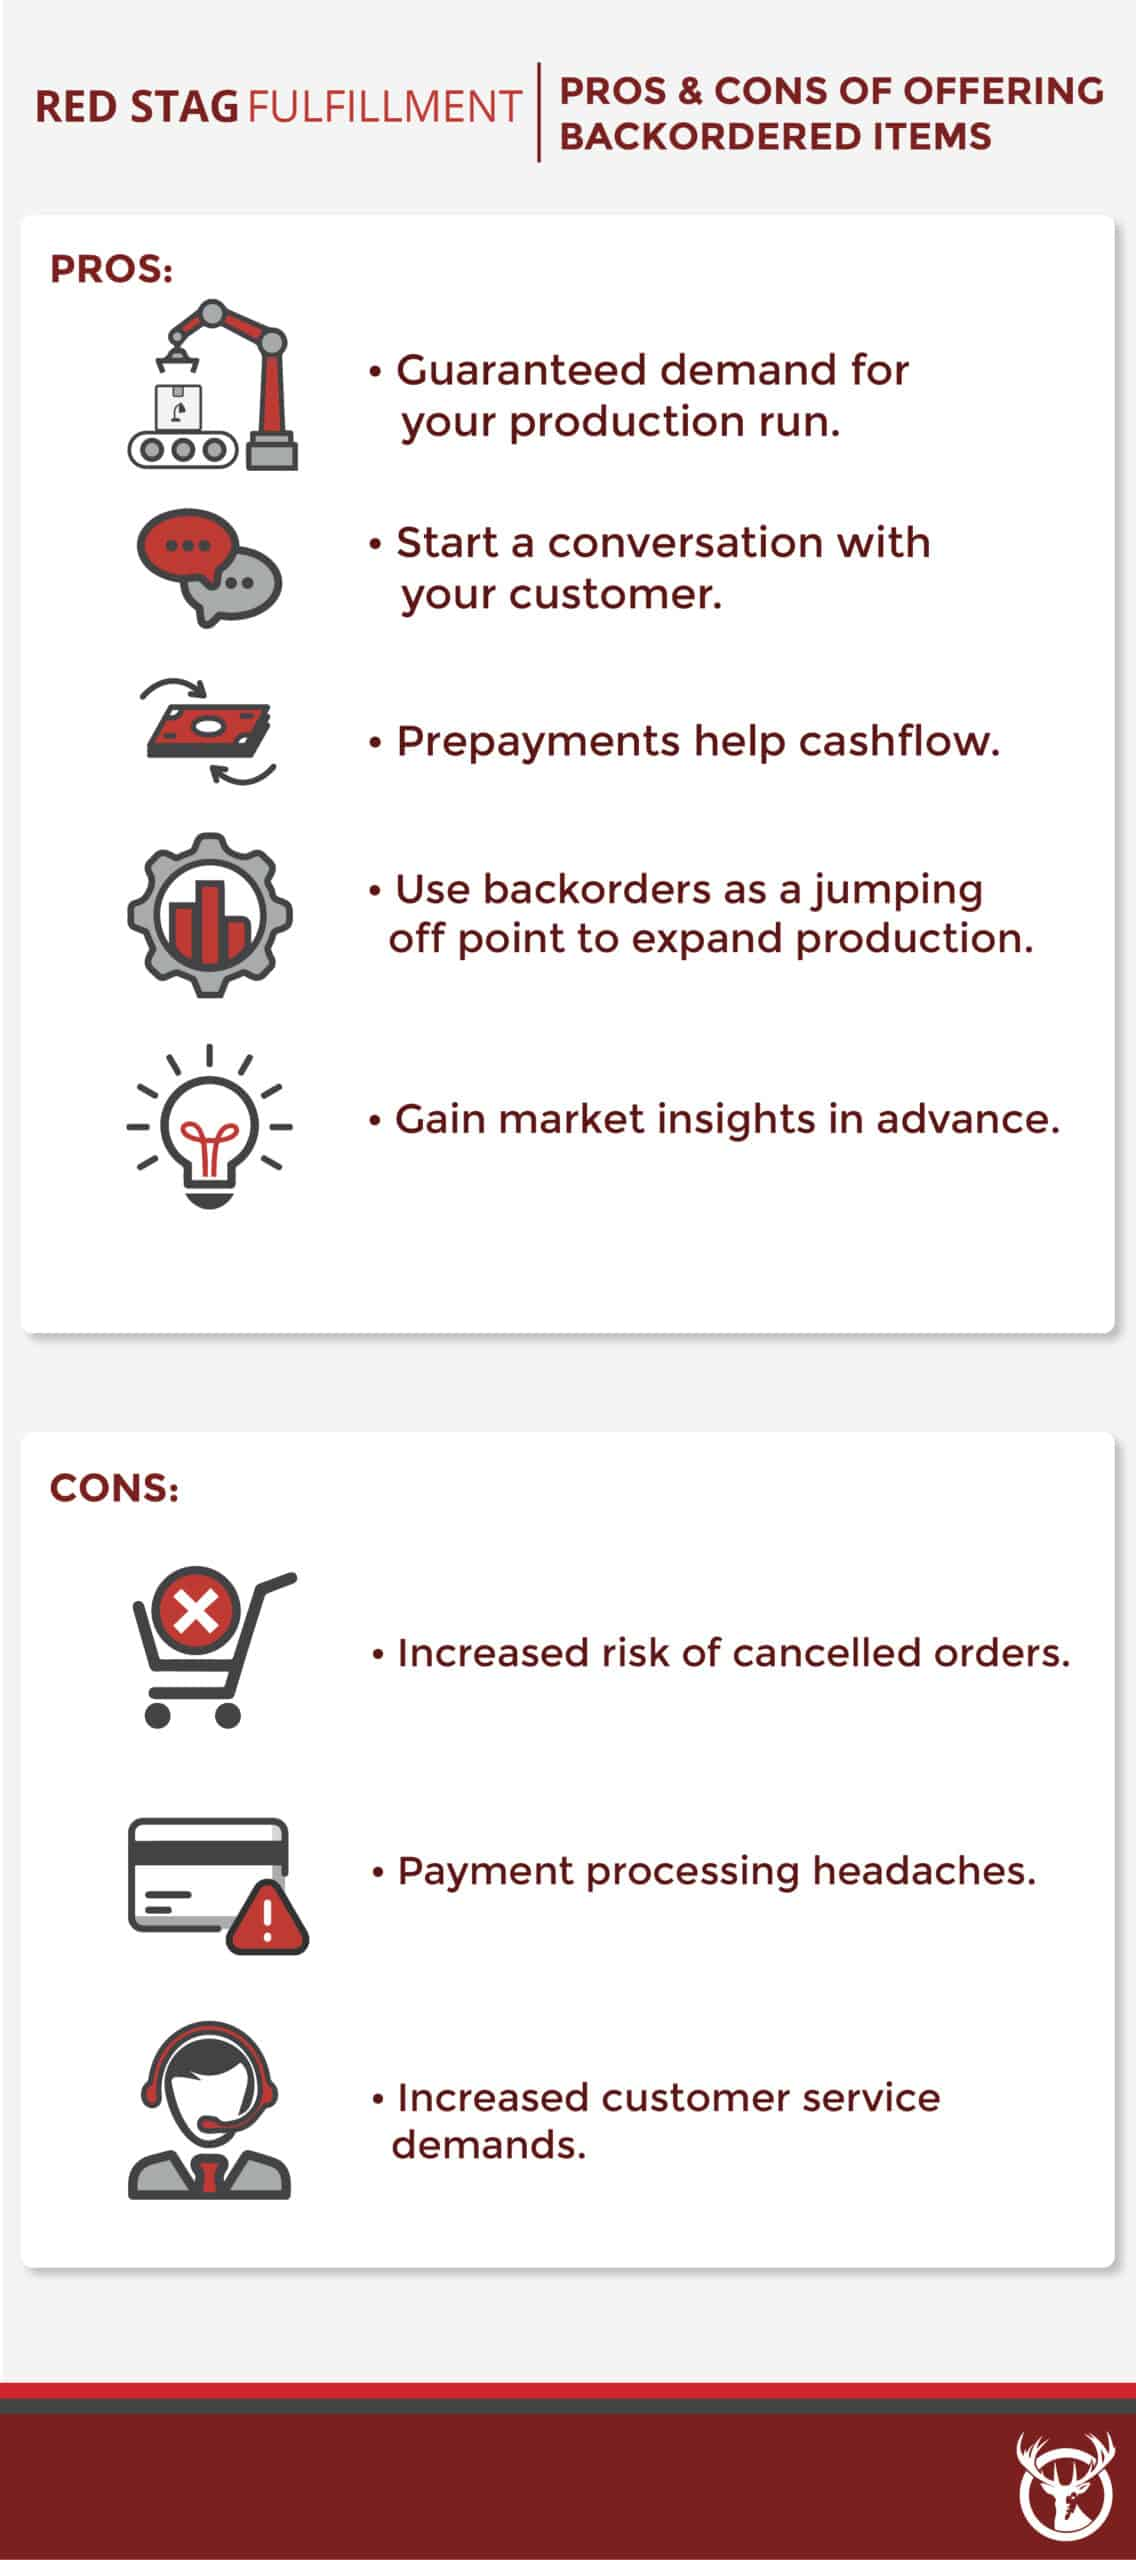 Pros & Cons of Backorders